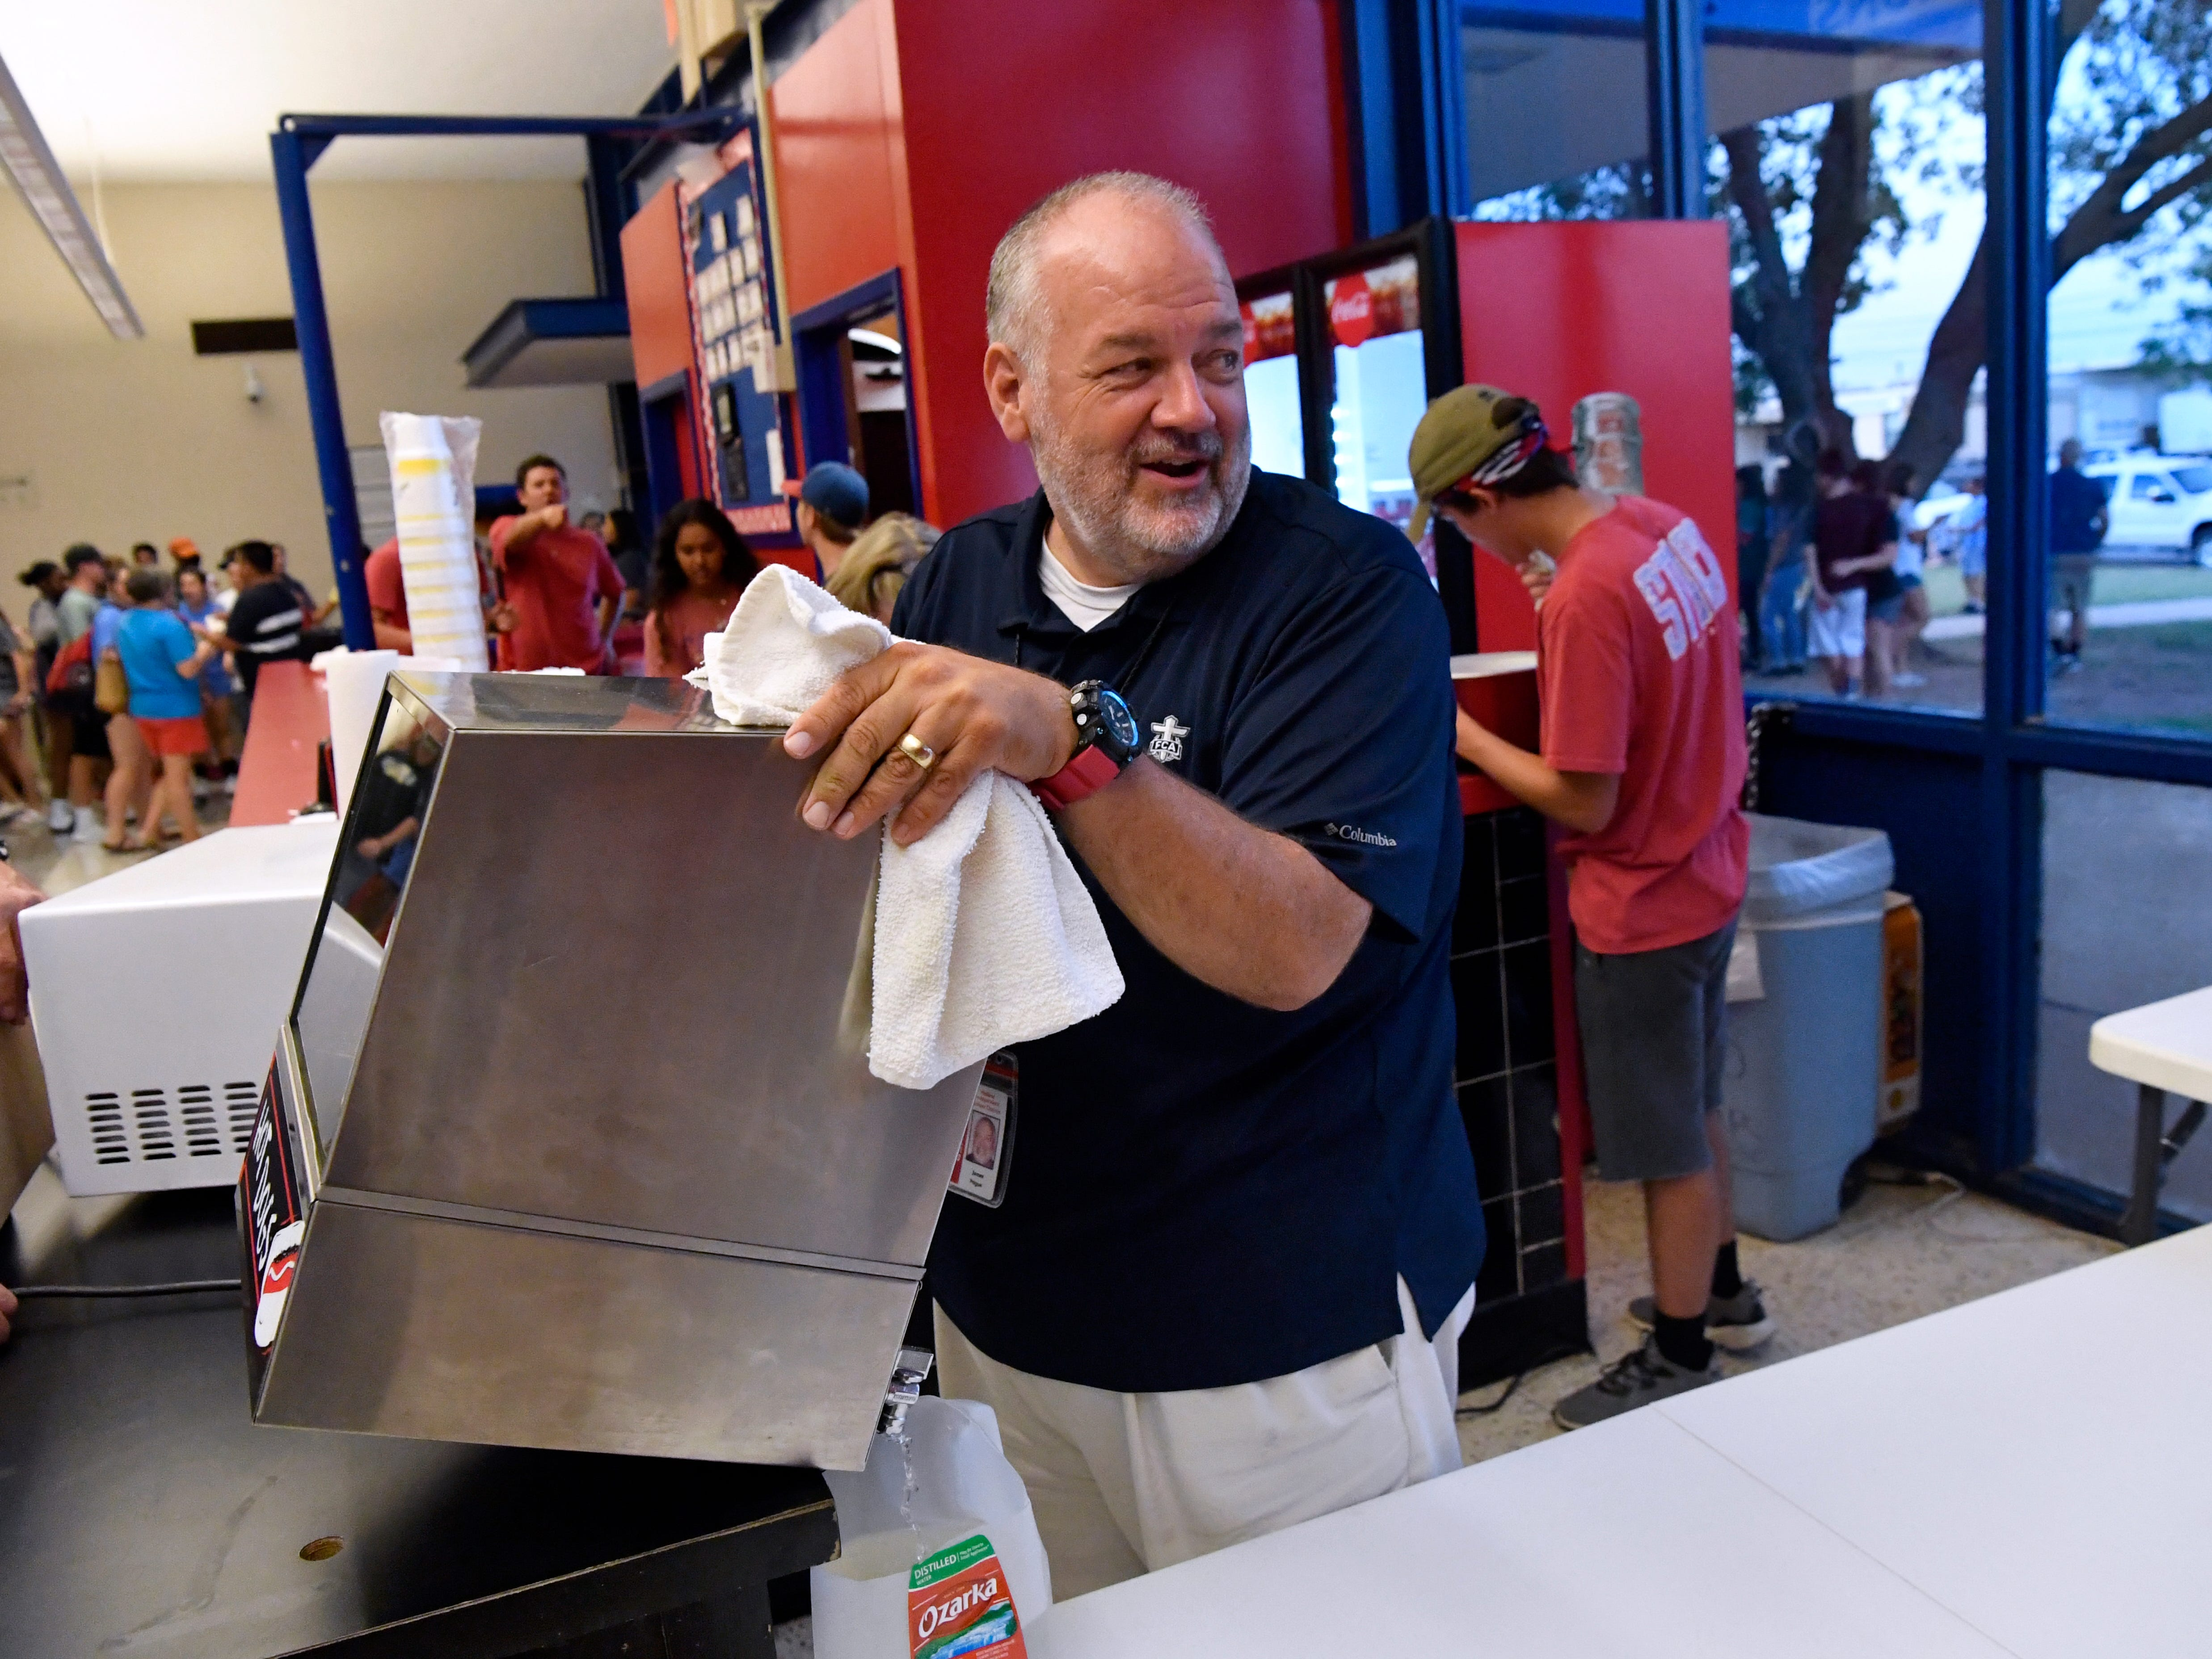 Jimmy Pogue says goodbye to a friend as he cleans out the hotdog box at the Cooper High School gymnasium's concession stand August 7, 2018.